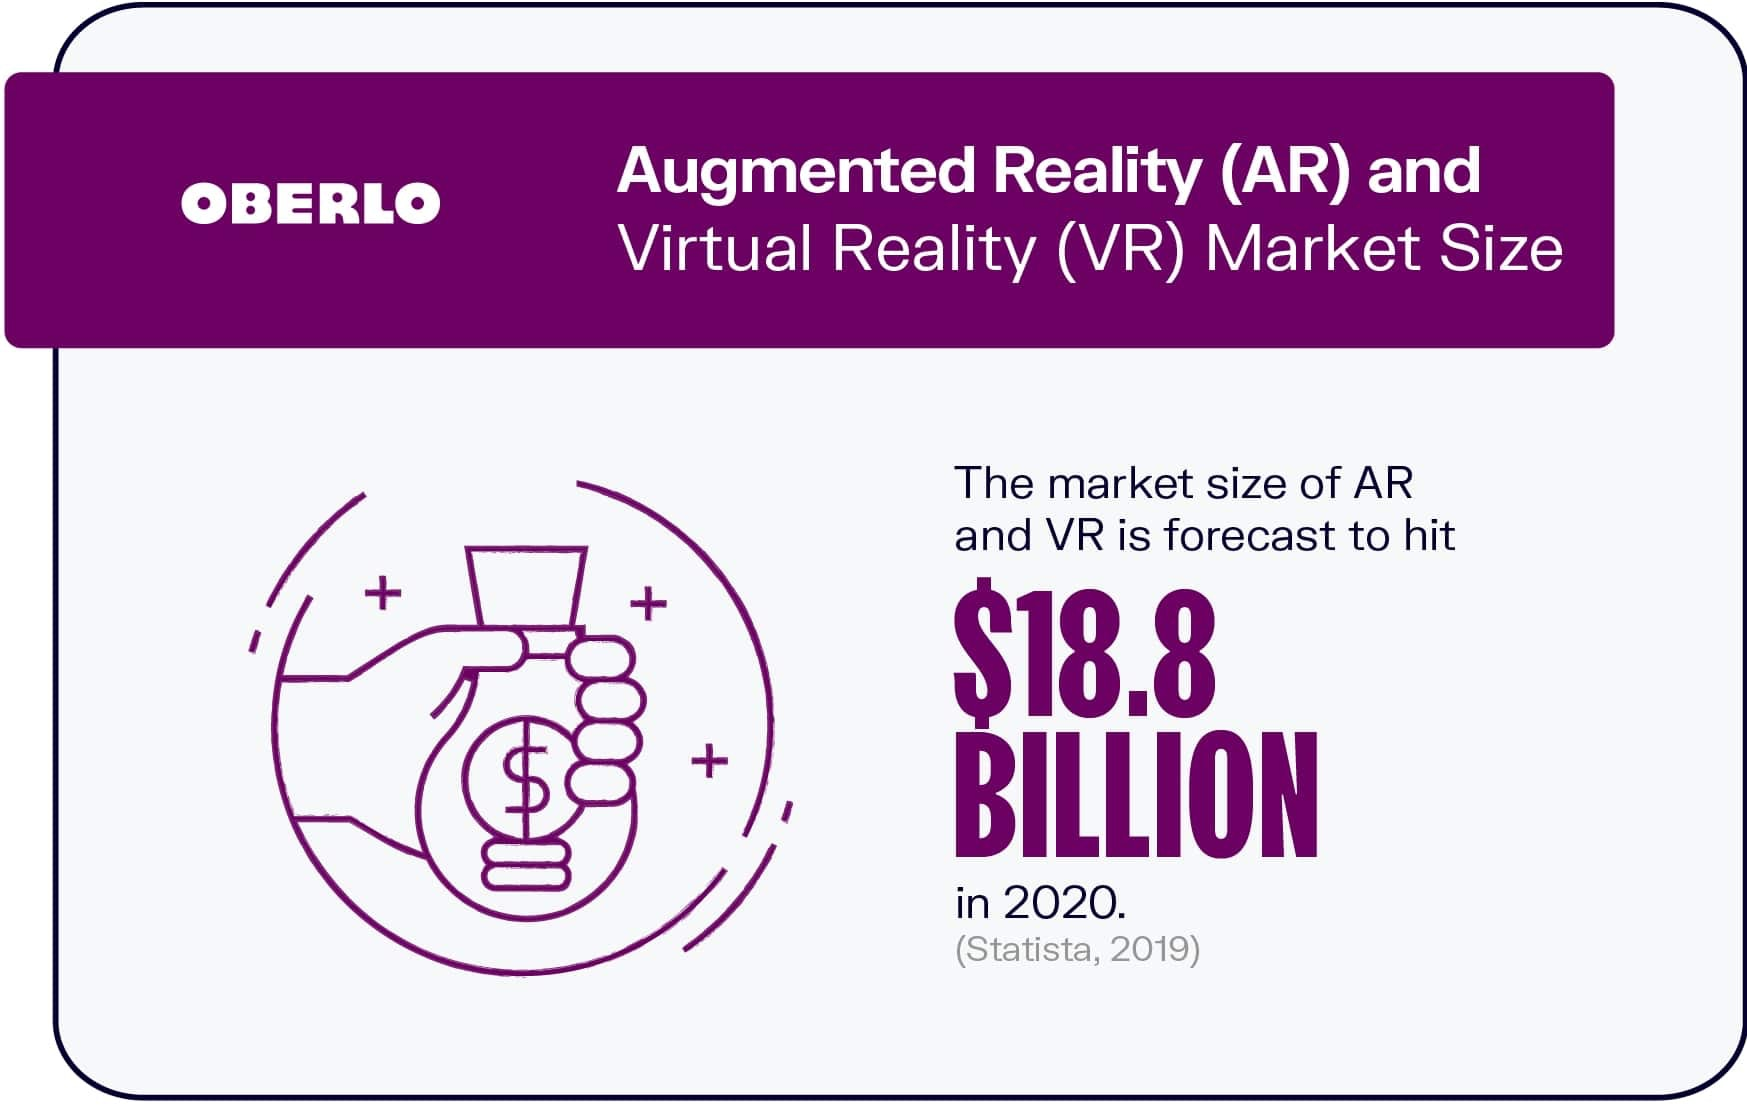 Augmented Reality (AR) and Virtual Reality (VR) Market Size